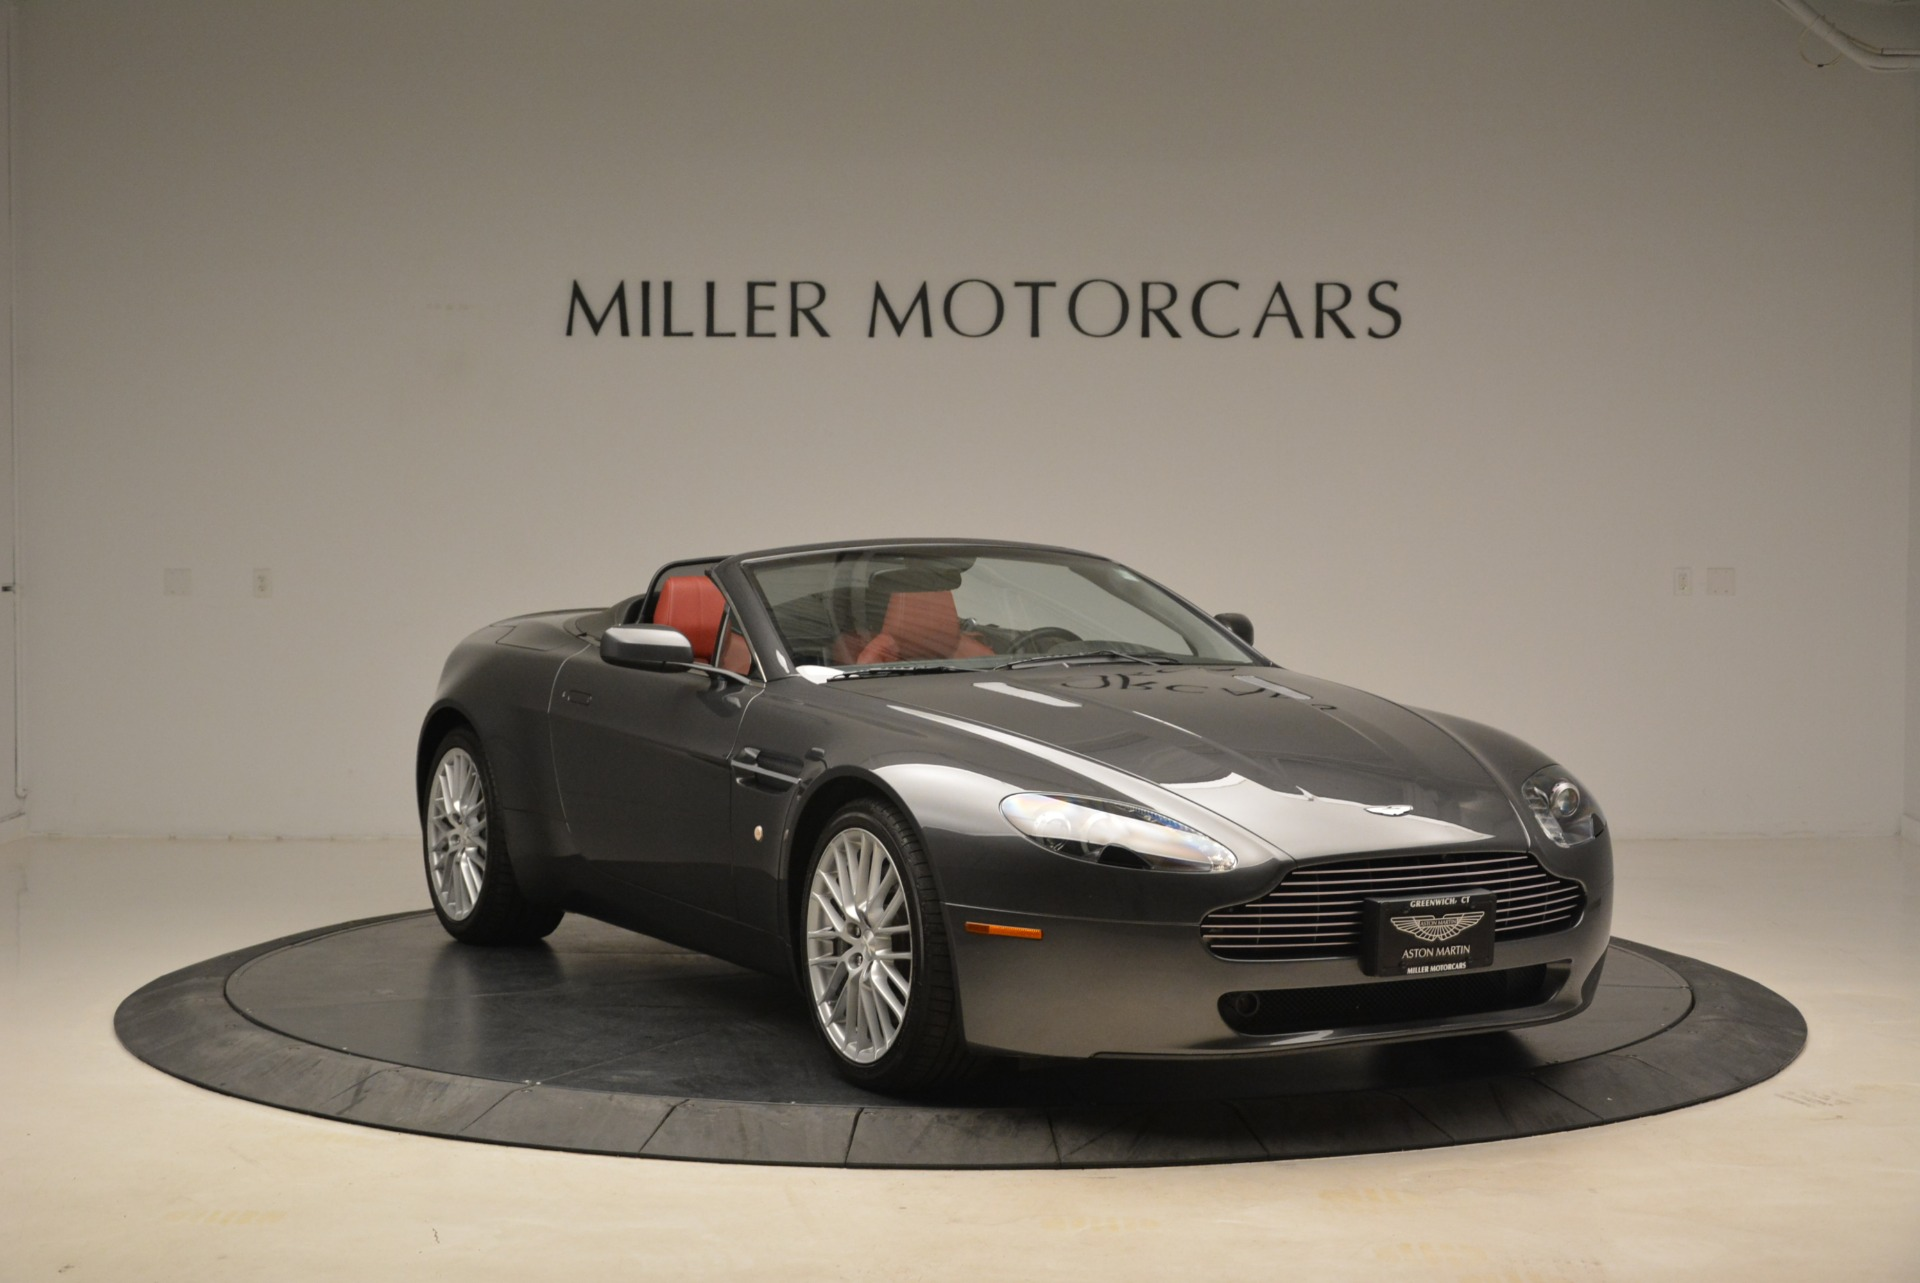 Used 2009 Aston Martin V8 Vantage Roadster For Sale In Greenwich, CT. Alfa Romeo of Greenwich, 7333 2123_p11